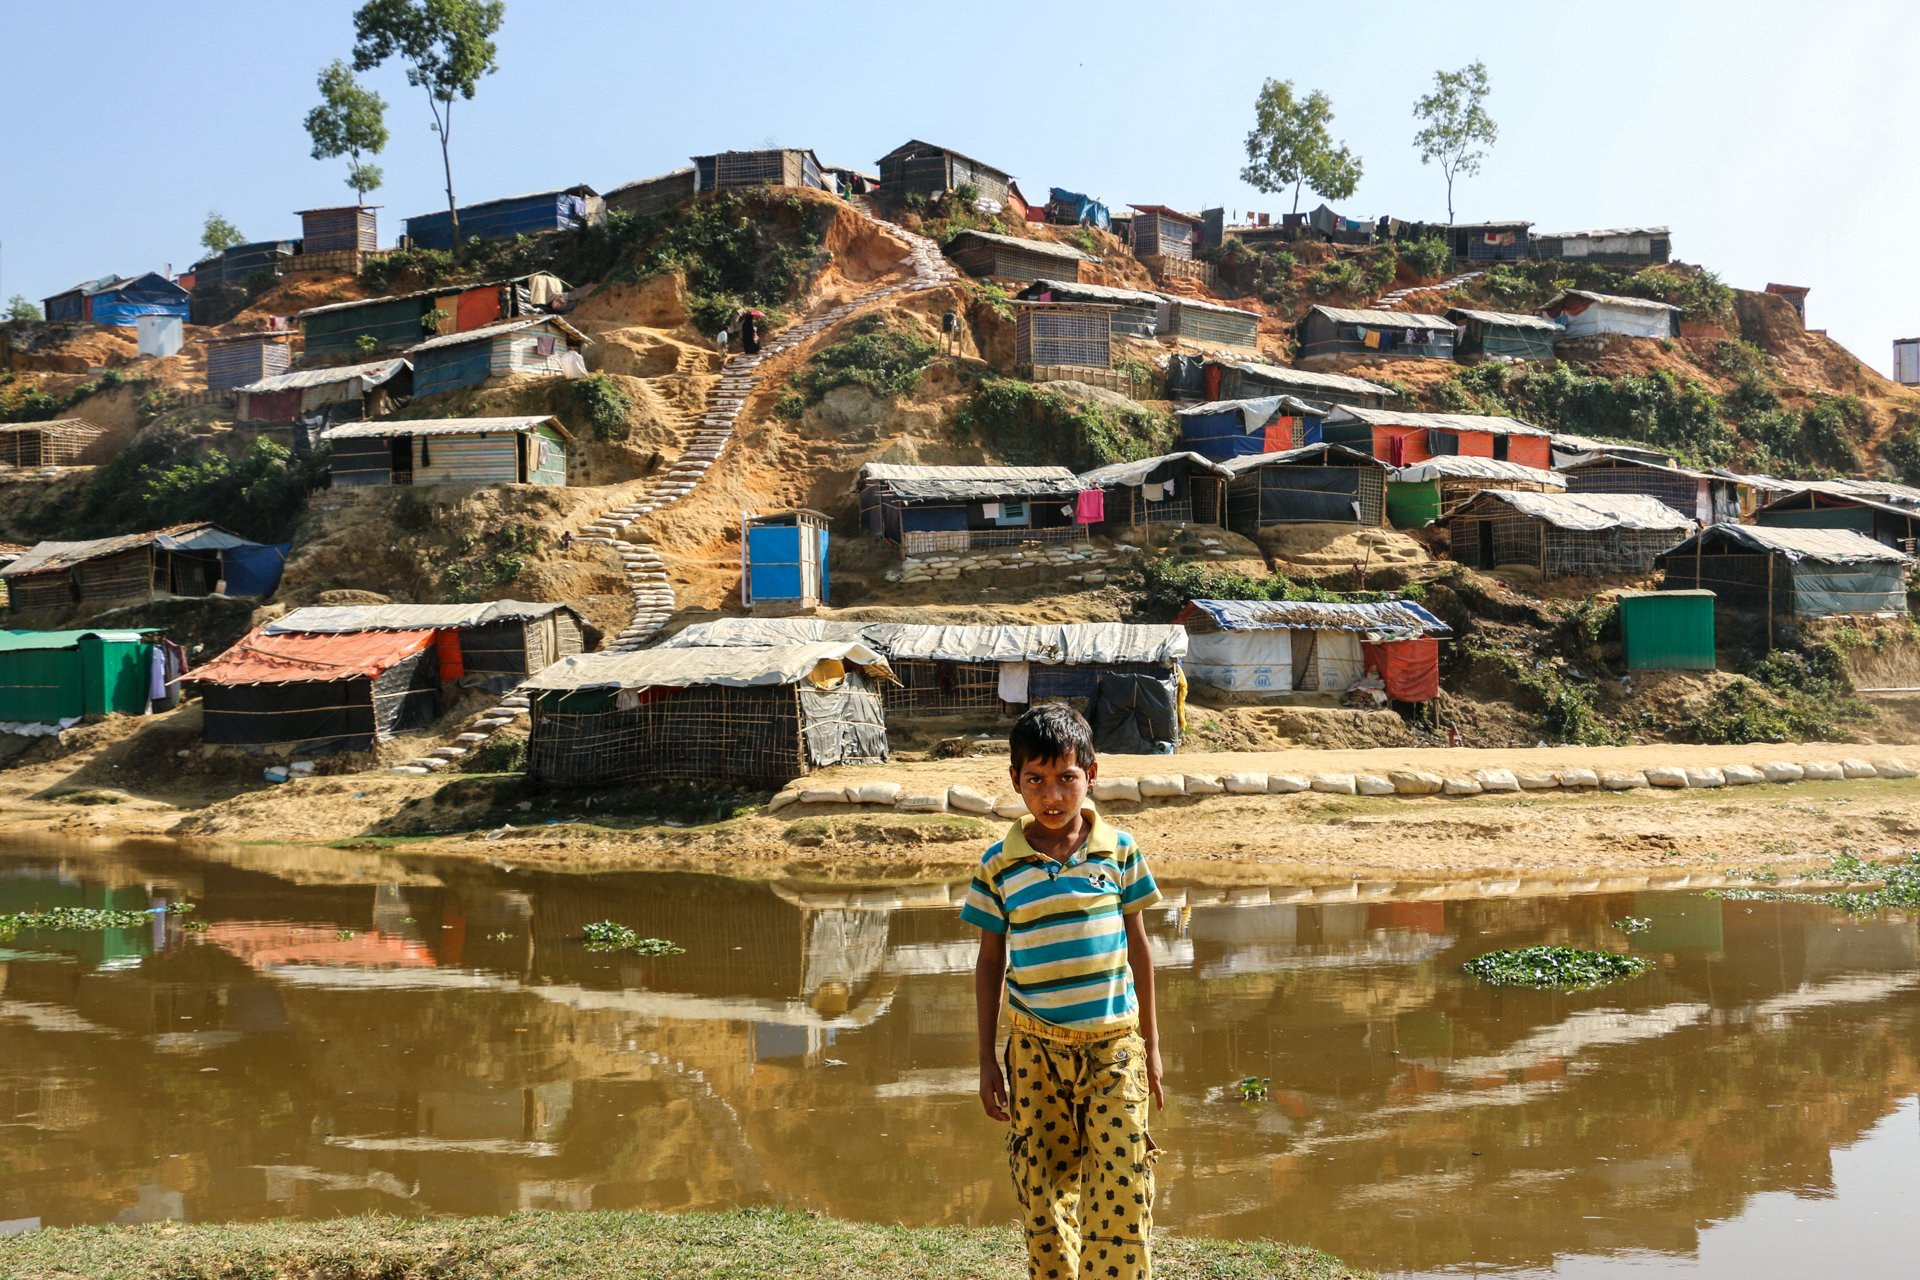 Refugee homes in Cox's Bazar, Bangladesh